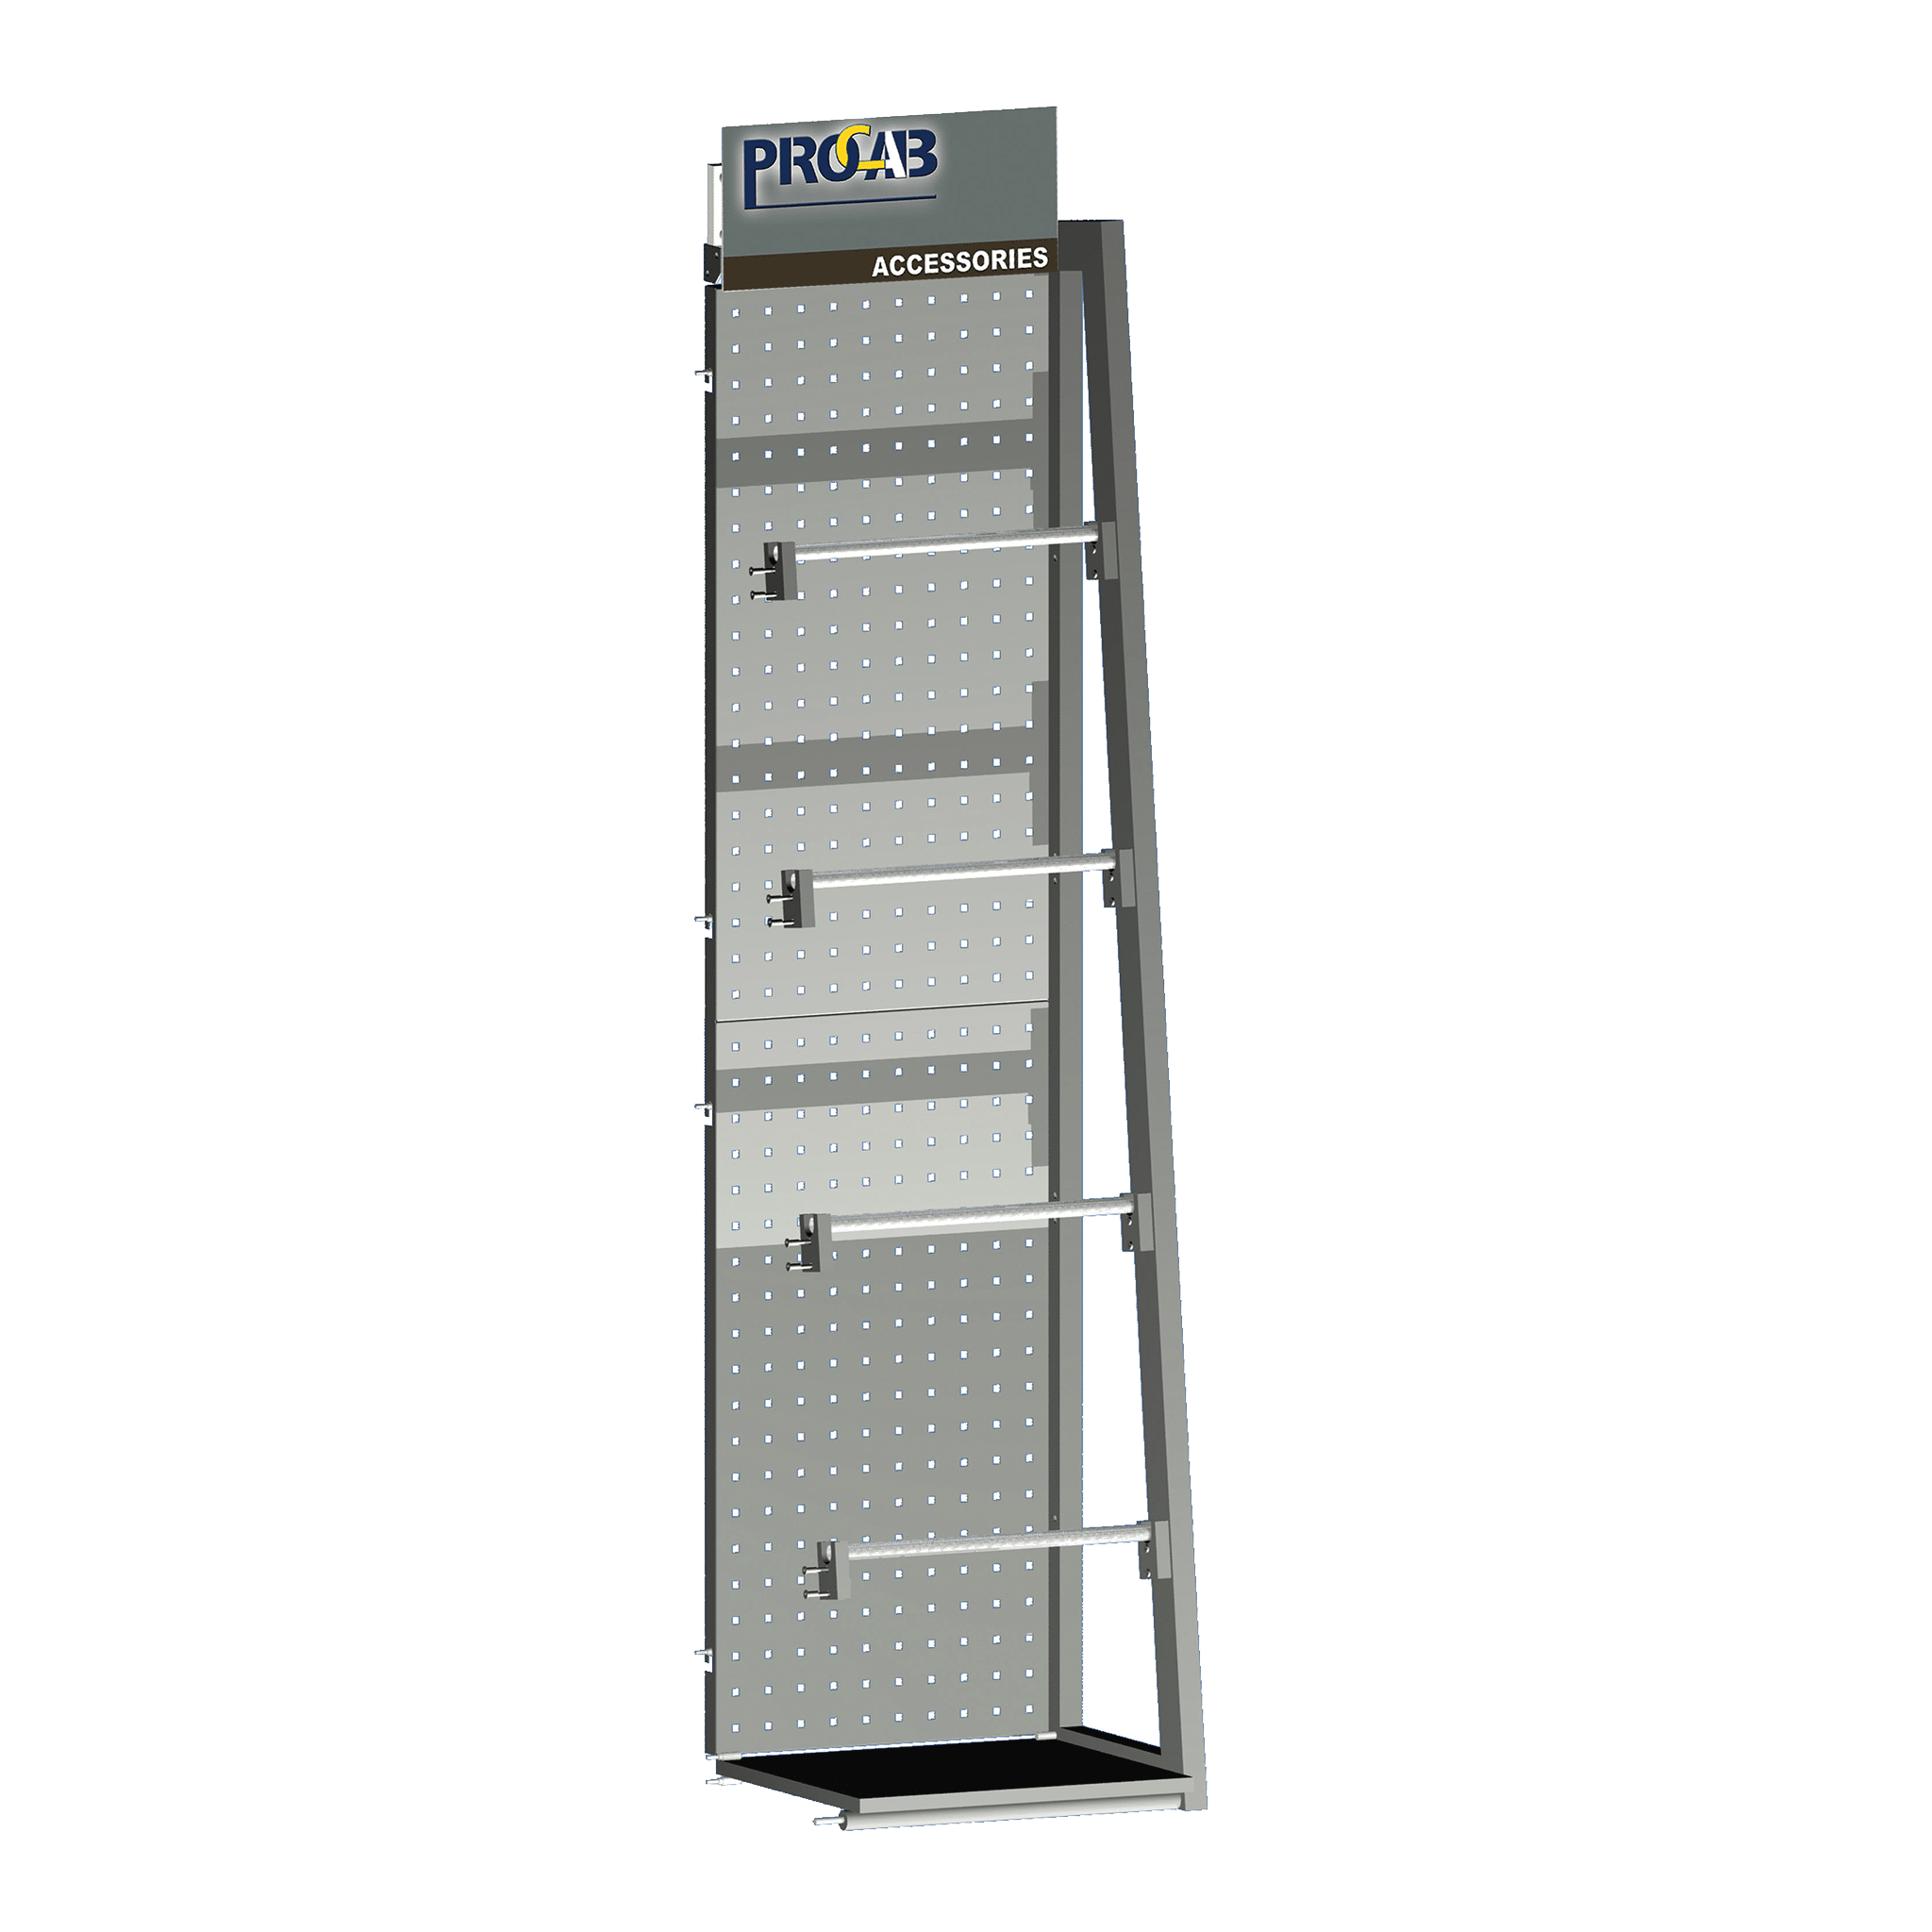 PROMORD4003 - Extension display rack for cable reels